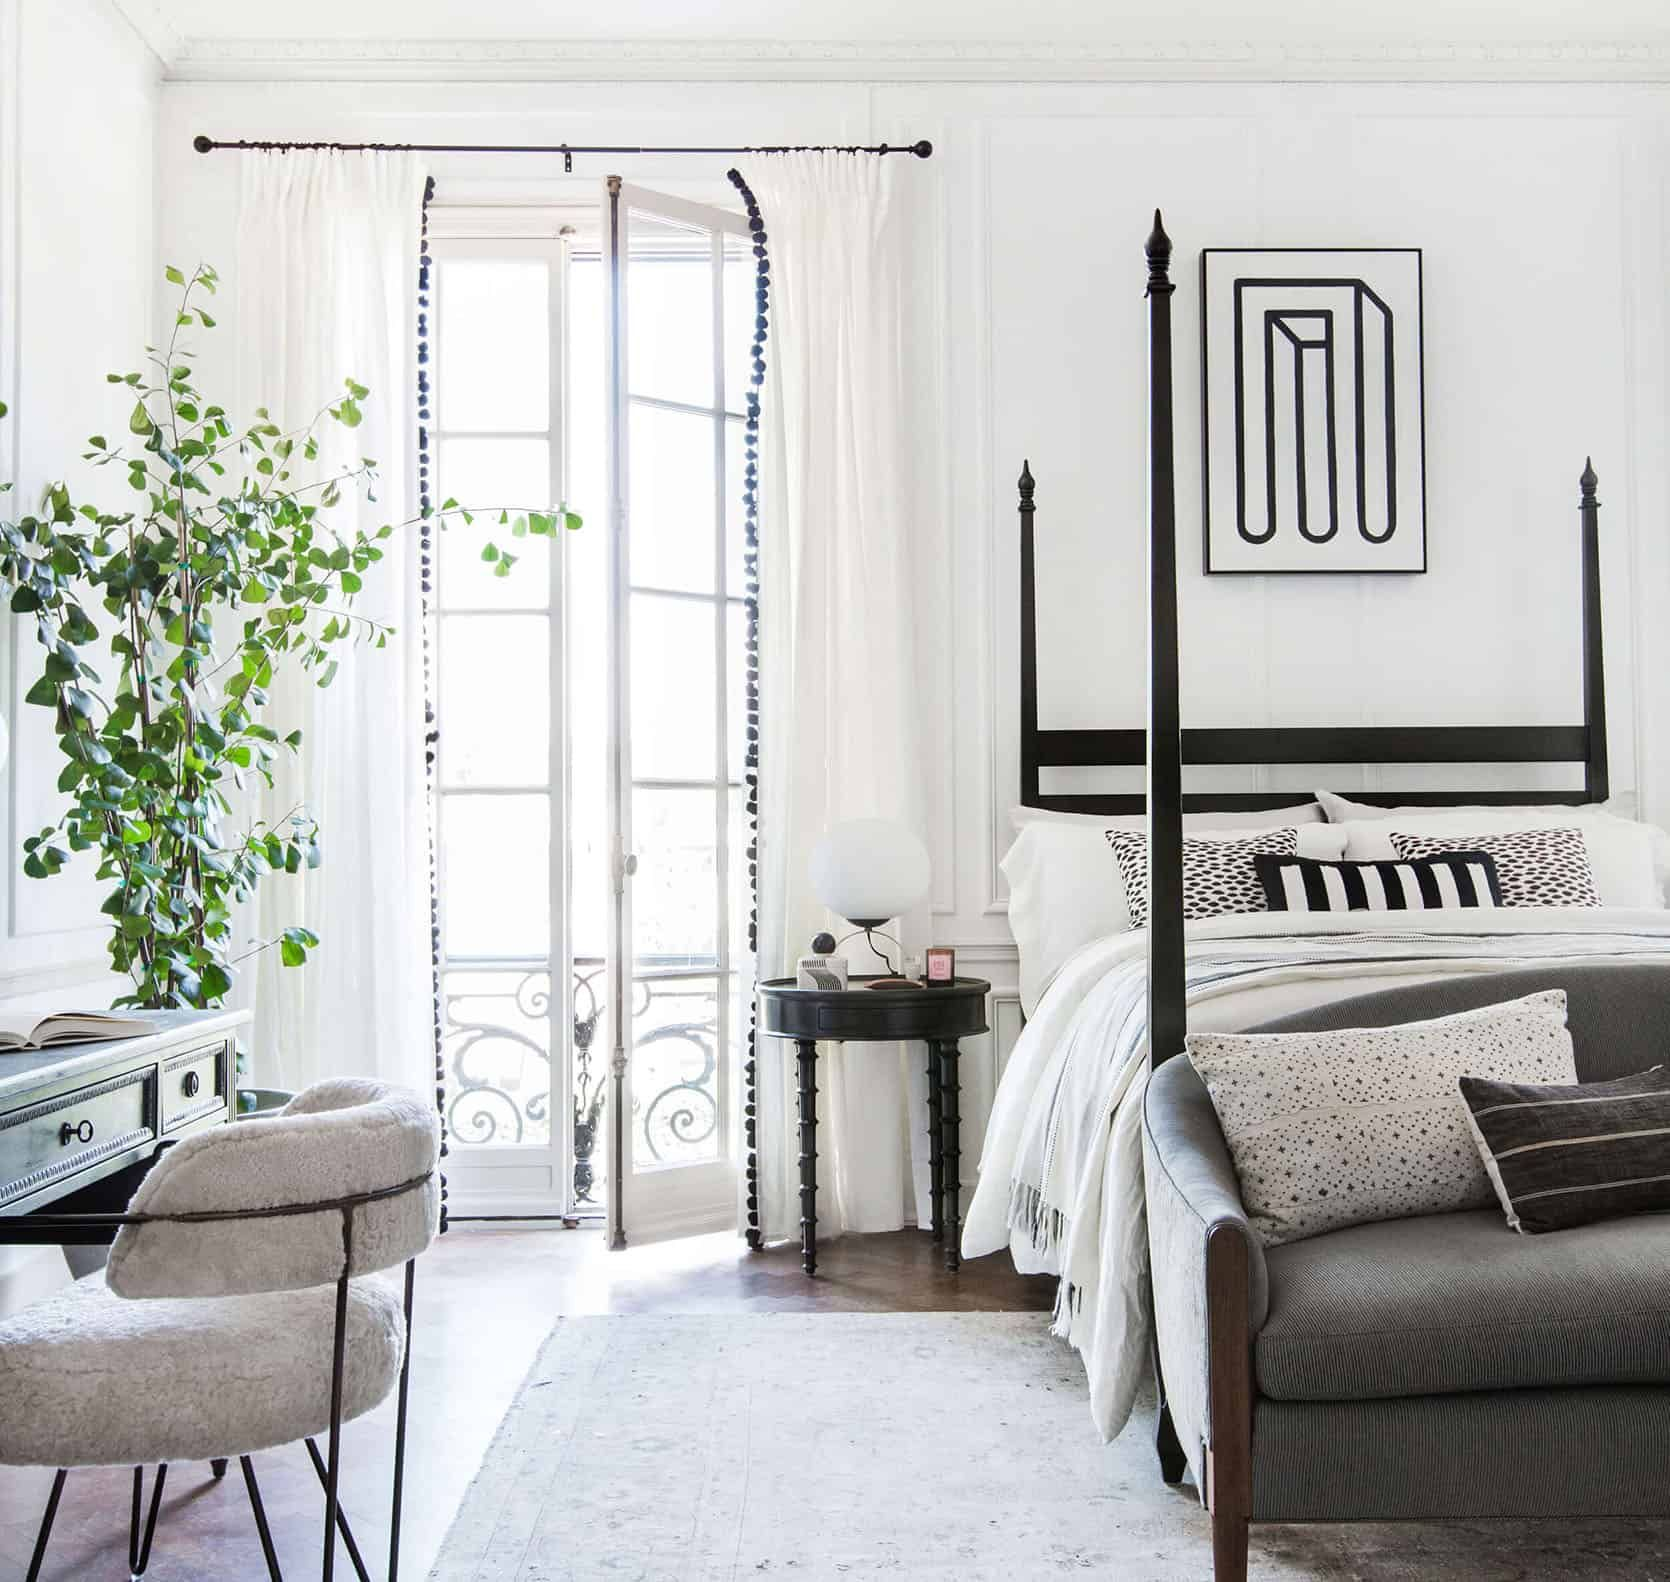 20 VERY Affordable Pillow Combos & Our 5 No-Fail Combo Rules - Emily Henderson #throwpillows #homedecor #stylingtips #interiors